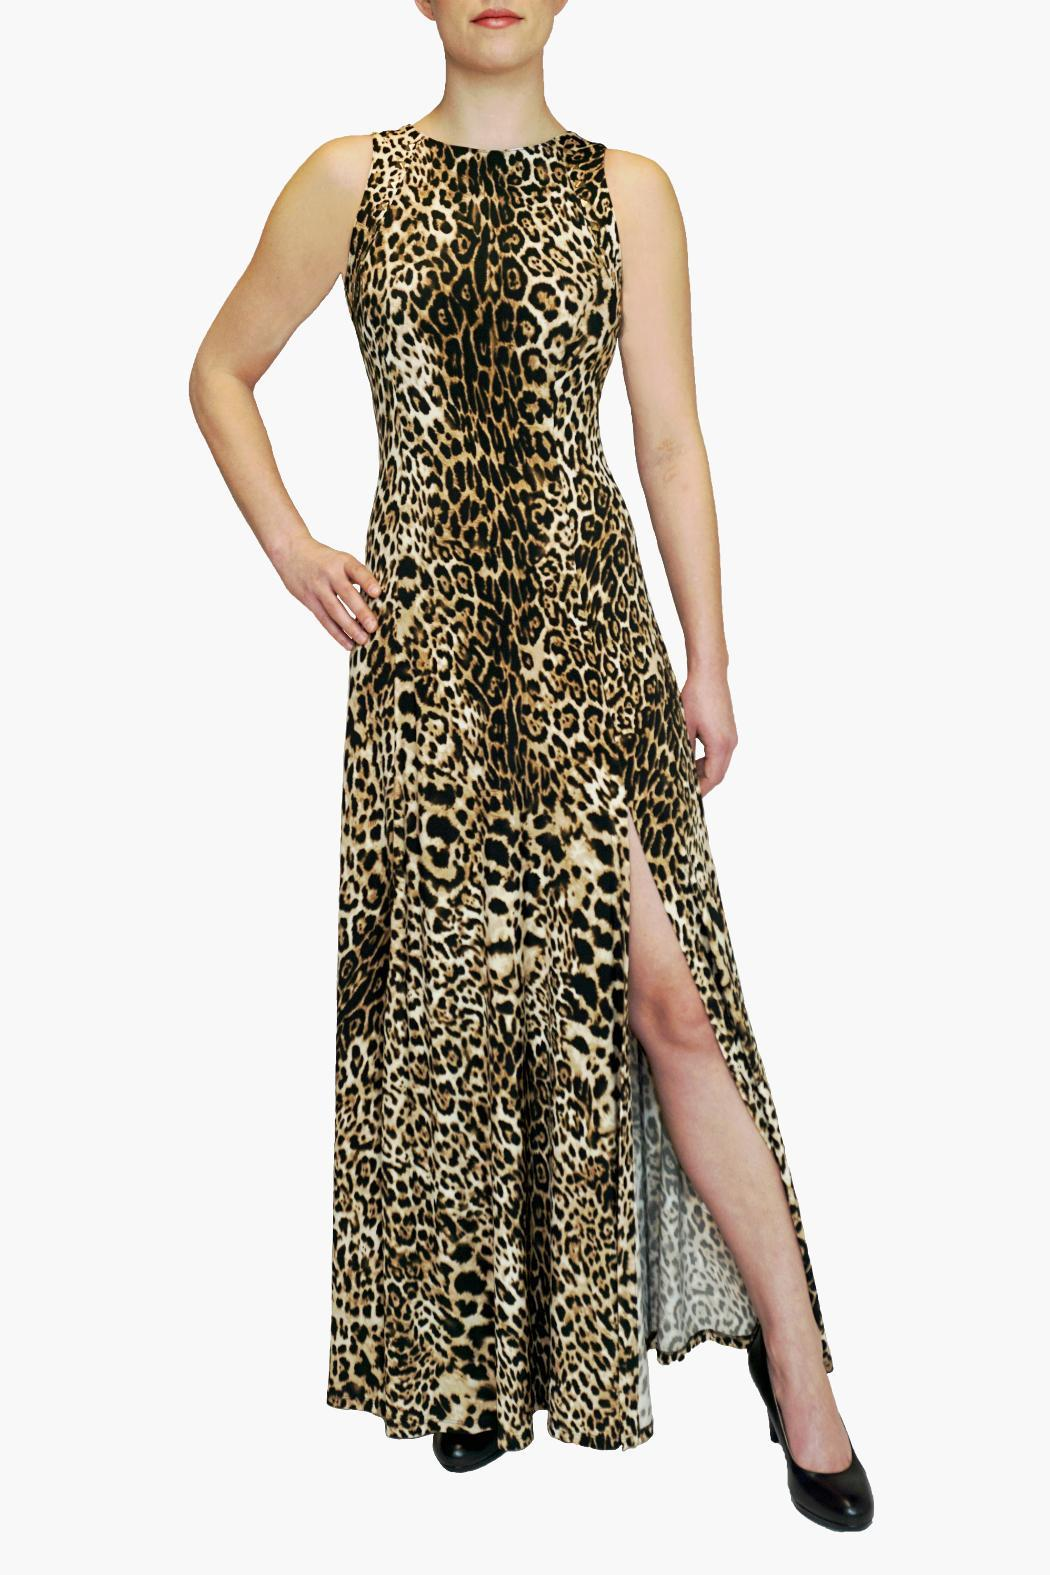 Joseph Ribkoff Leopard Print Maxi from Canada by The Sandbox in the ...